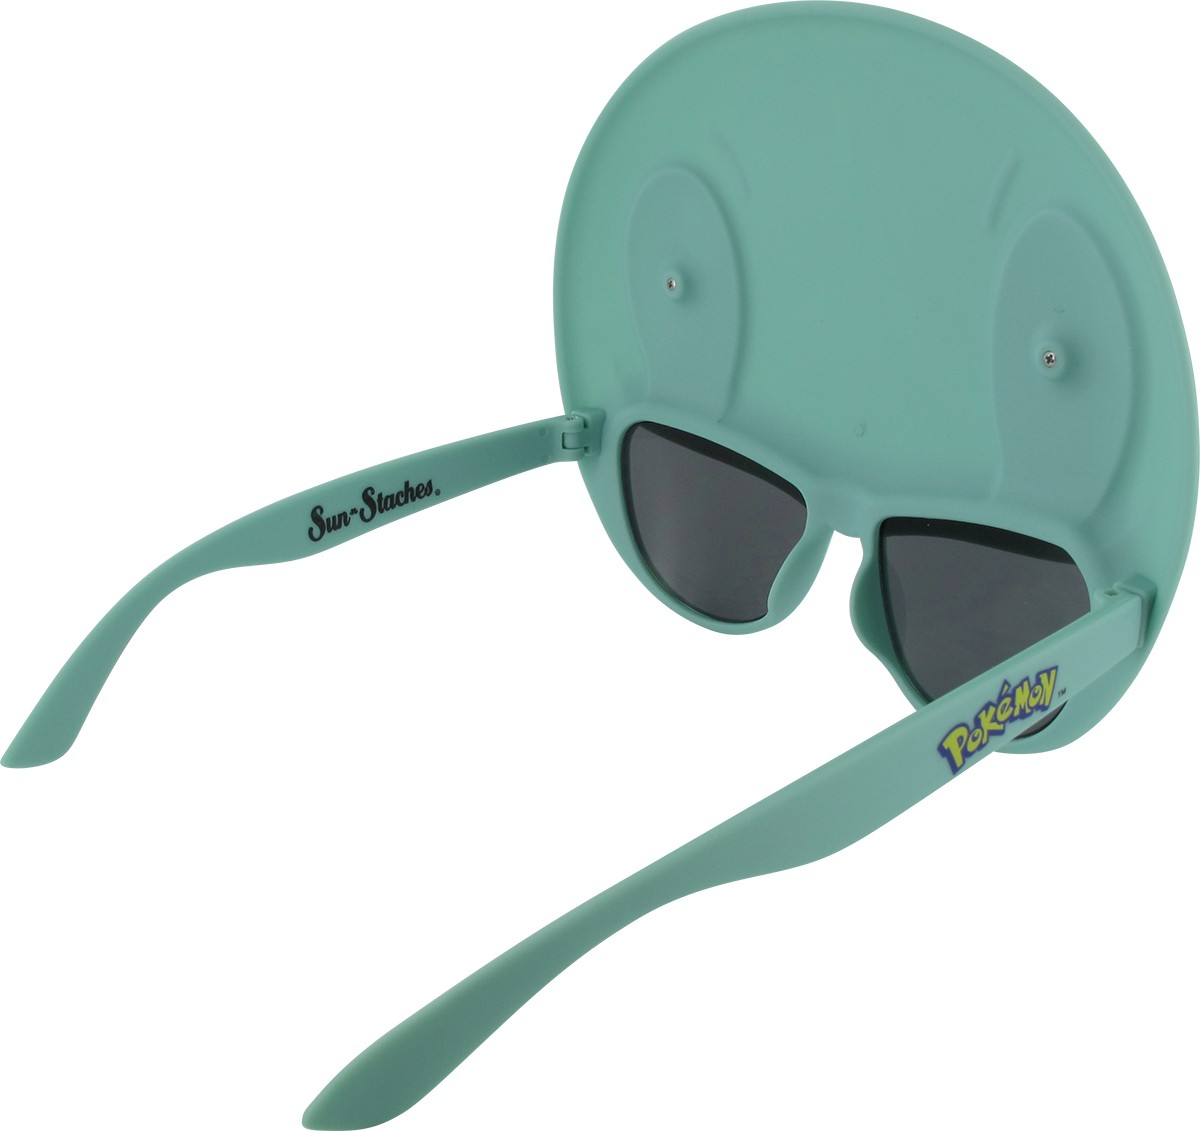 Squirtle With Sunglasses 34